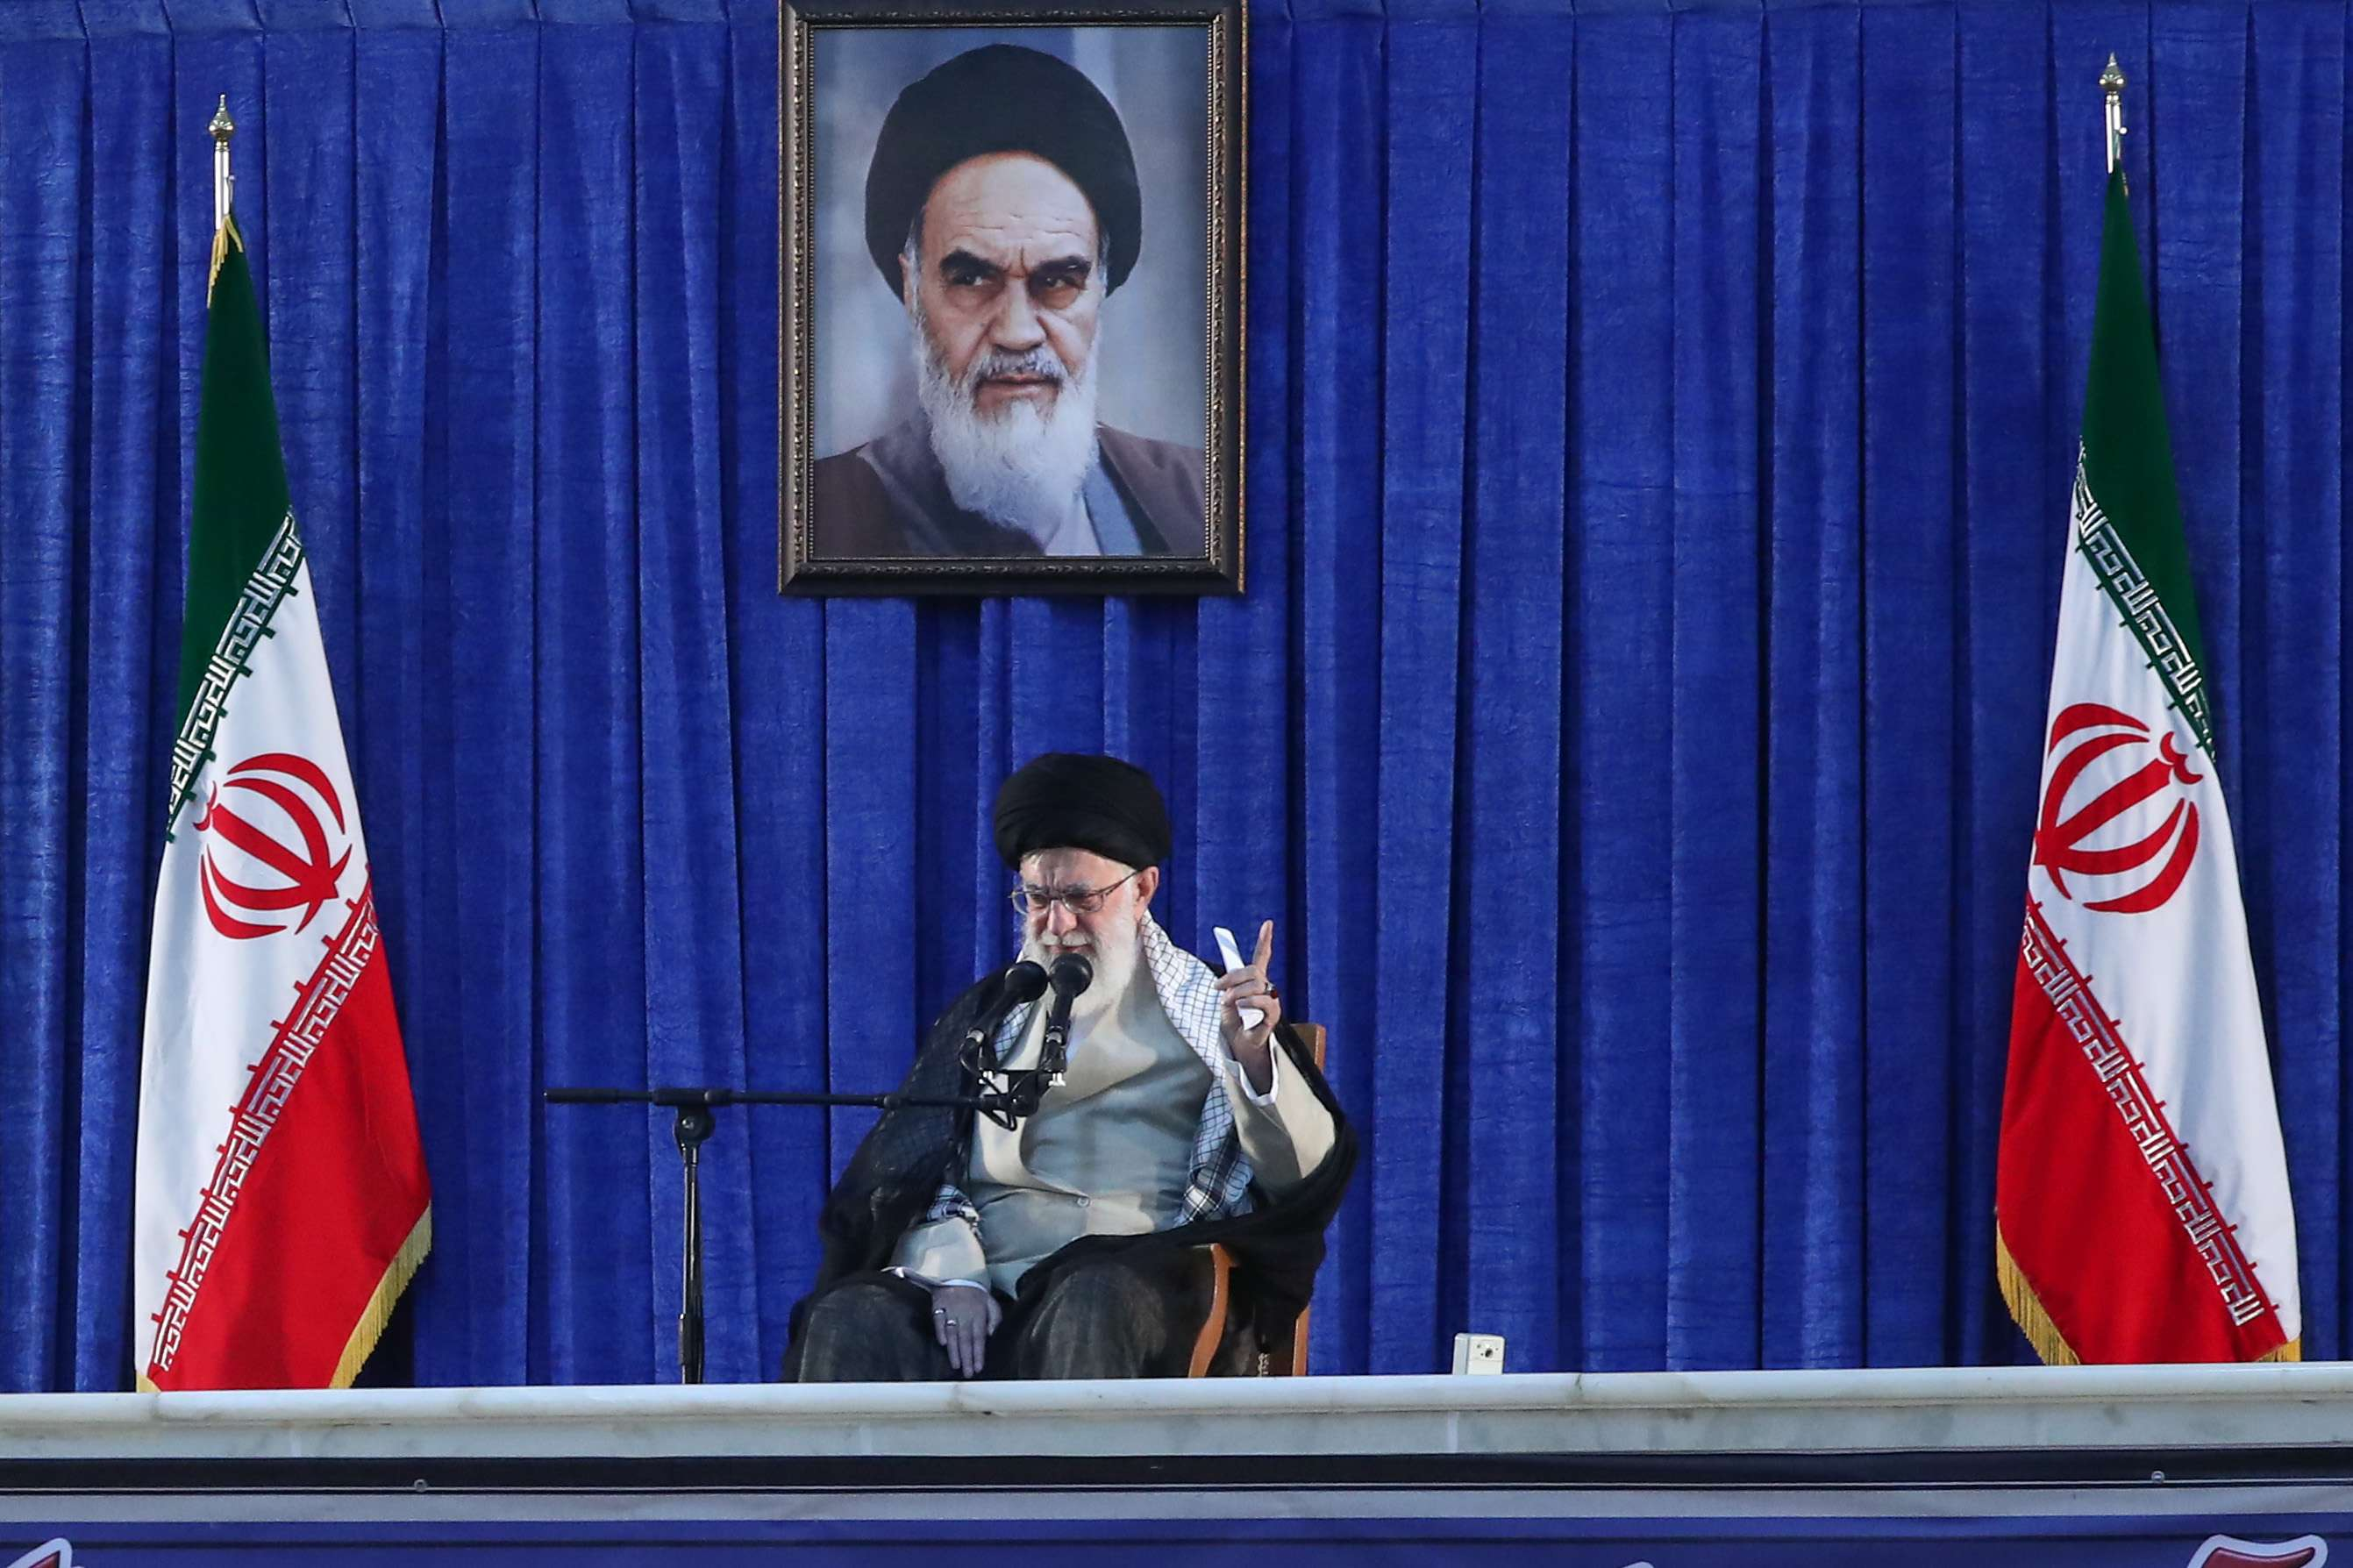 Iranian supreme leader Ayatollha Ali Khamenei delivers his speech to the crowd during the 30th death anniversary of former Iranian supreme leader Ayatollah Ruhollah Khomeini, in his shrine, June 4, 2019. (DPA)